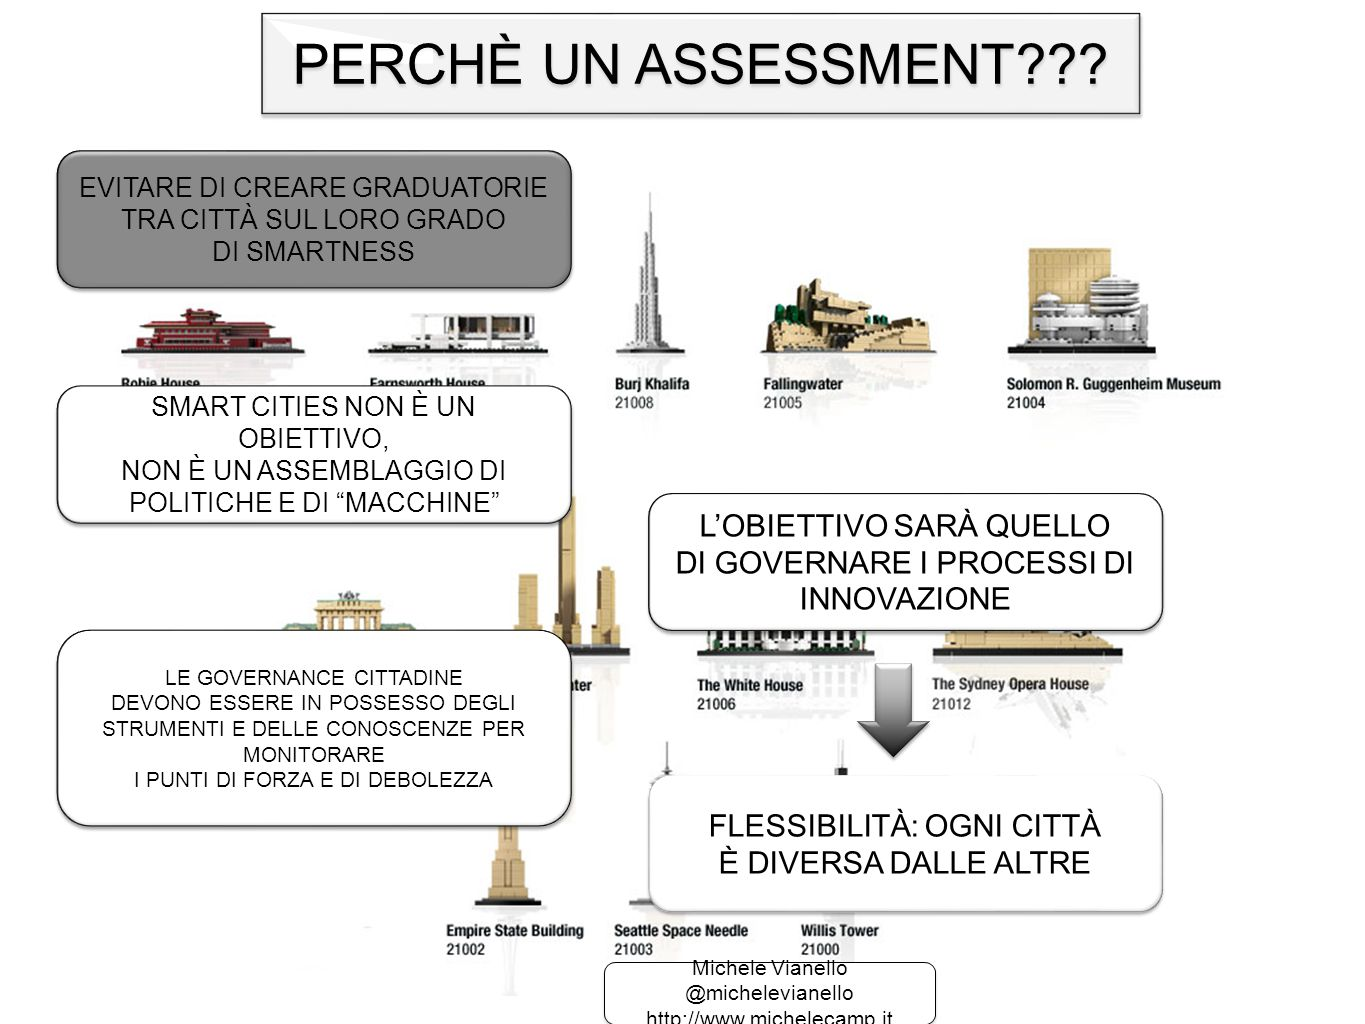 PERCHÈ UN ASSESSMENT .